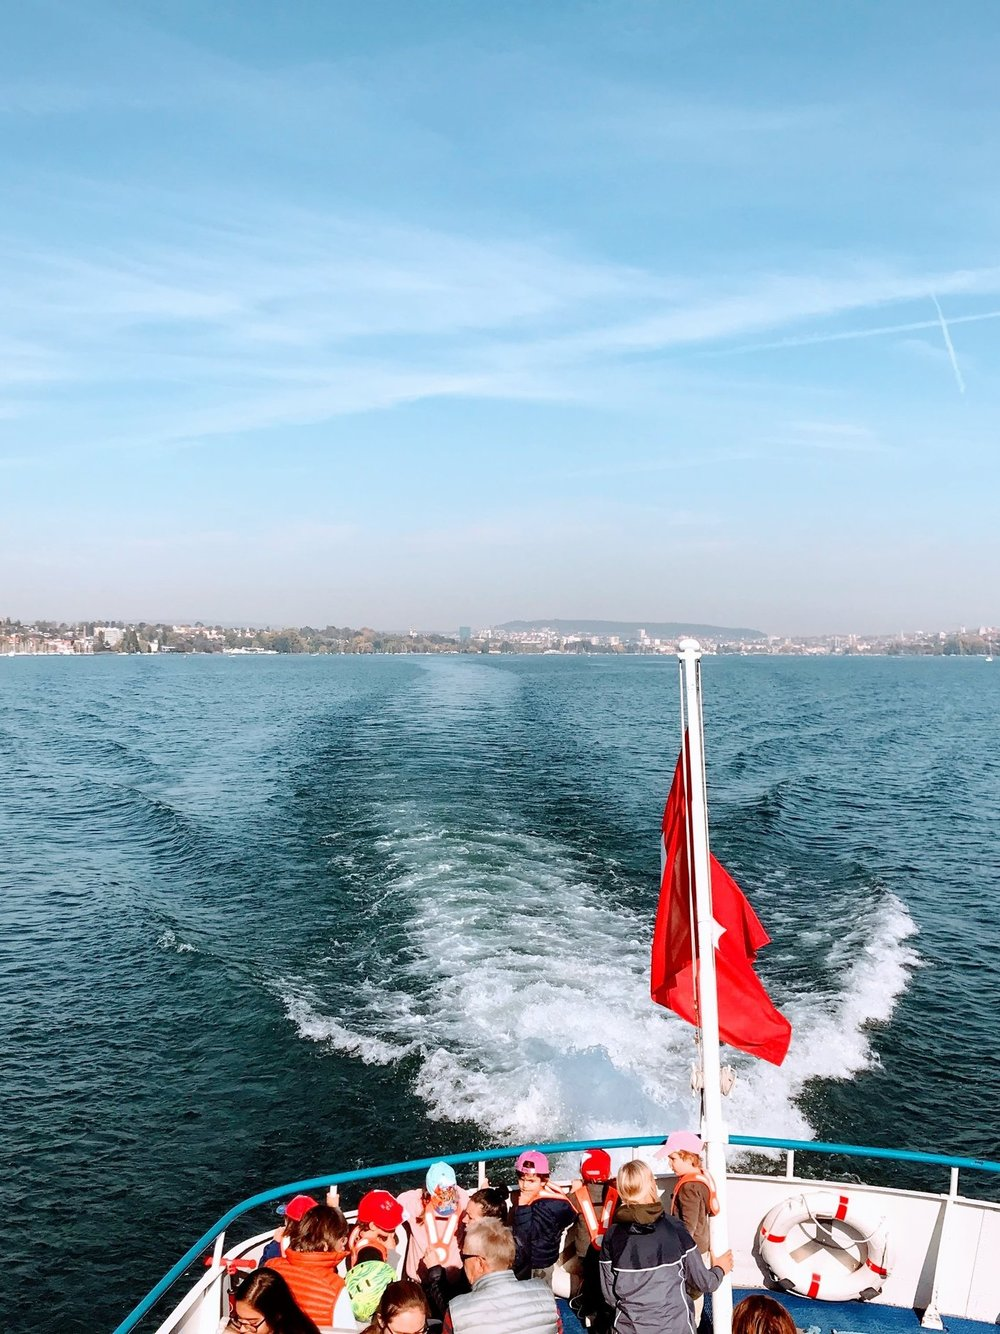 Ride on the ferry on Lake Zurich